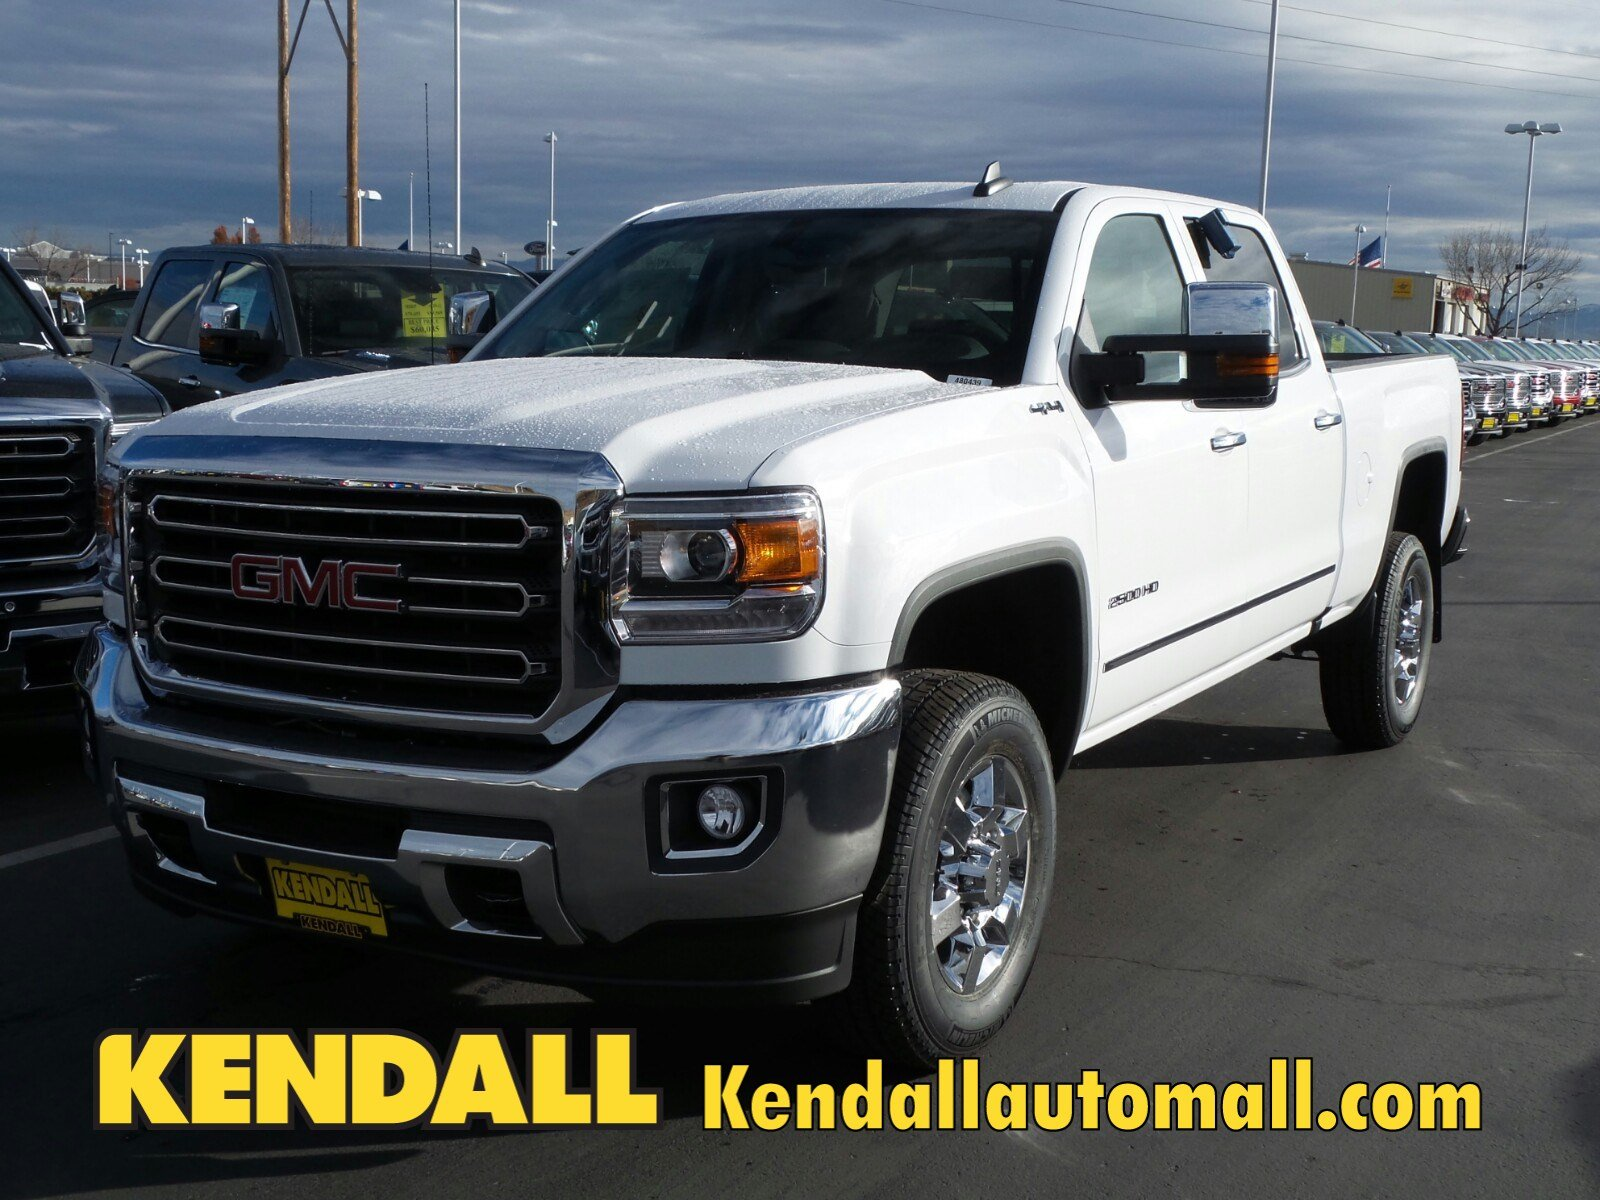 new 2018 gmc sierra 2500hd slt 4wd in nampa 480439 kendall at the idaho center auto mall. Black Bedroom Furniture Sets. Home Design Ideas